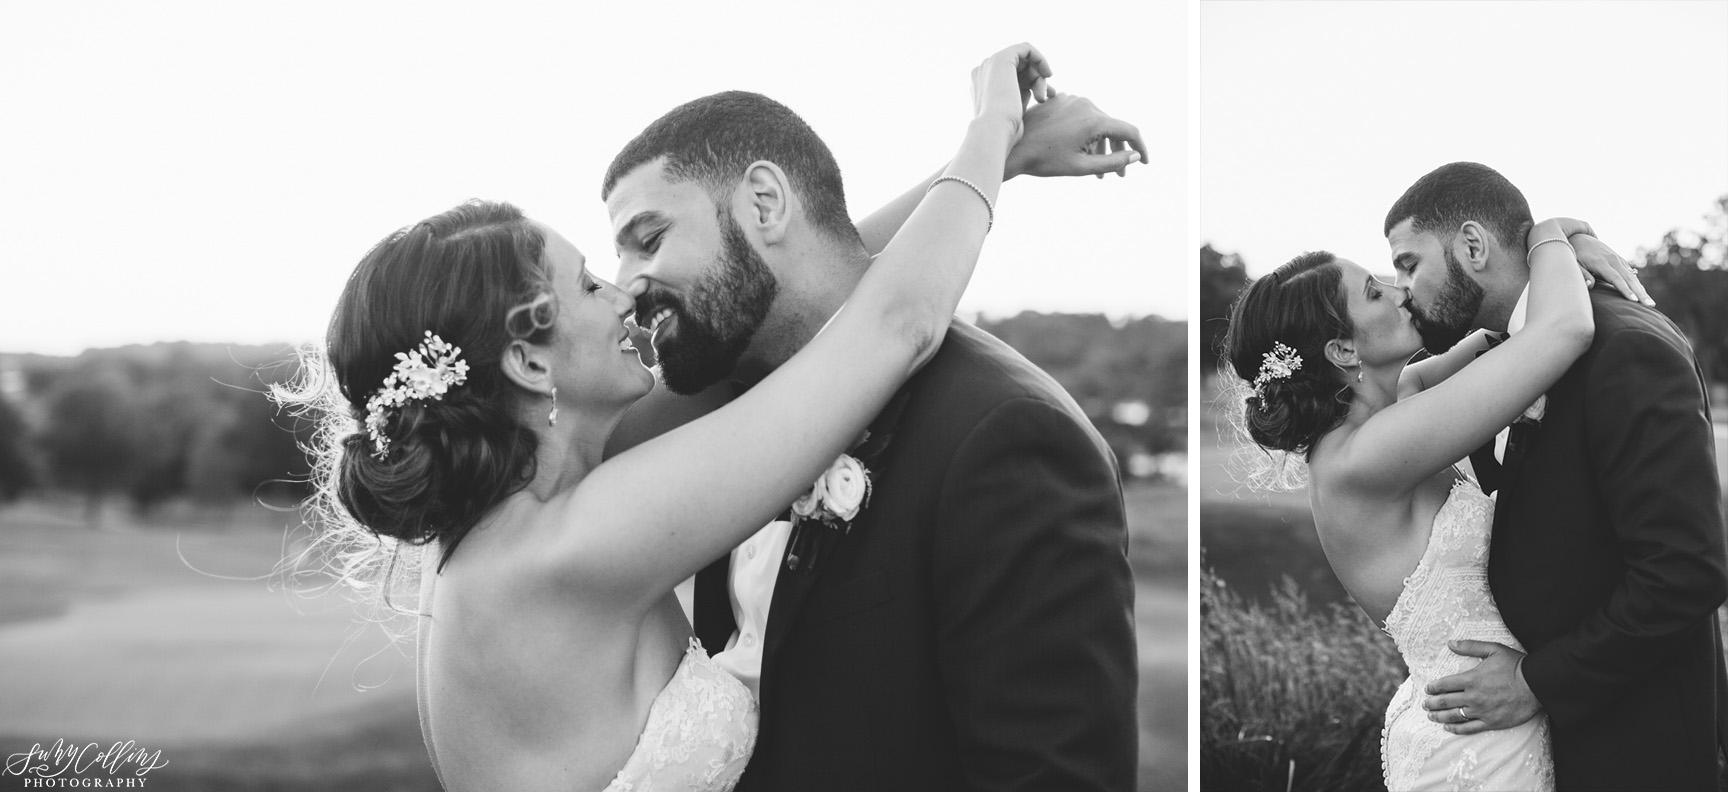 poses, indoor, romantic, spring, light and airy, natural light, ideas, passion, artistic, creative, inspiration, editorial, art, lighting, love, Knoxville, Tennessee, Cherokee country club, vibrant, colorful, bright, bride, groom, portraits, kiss, black and white